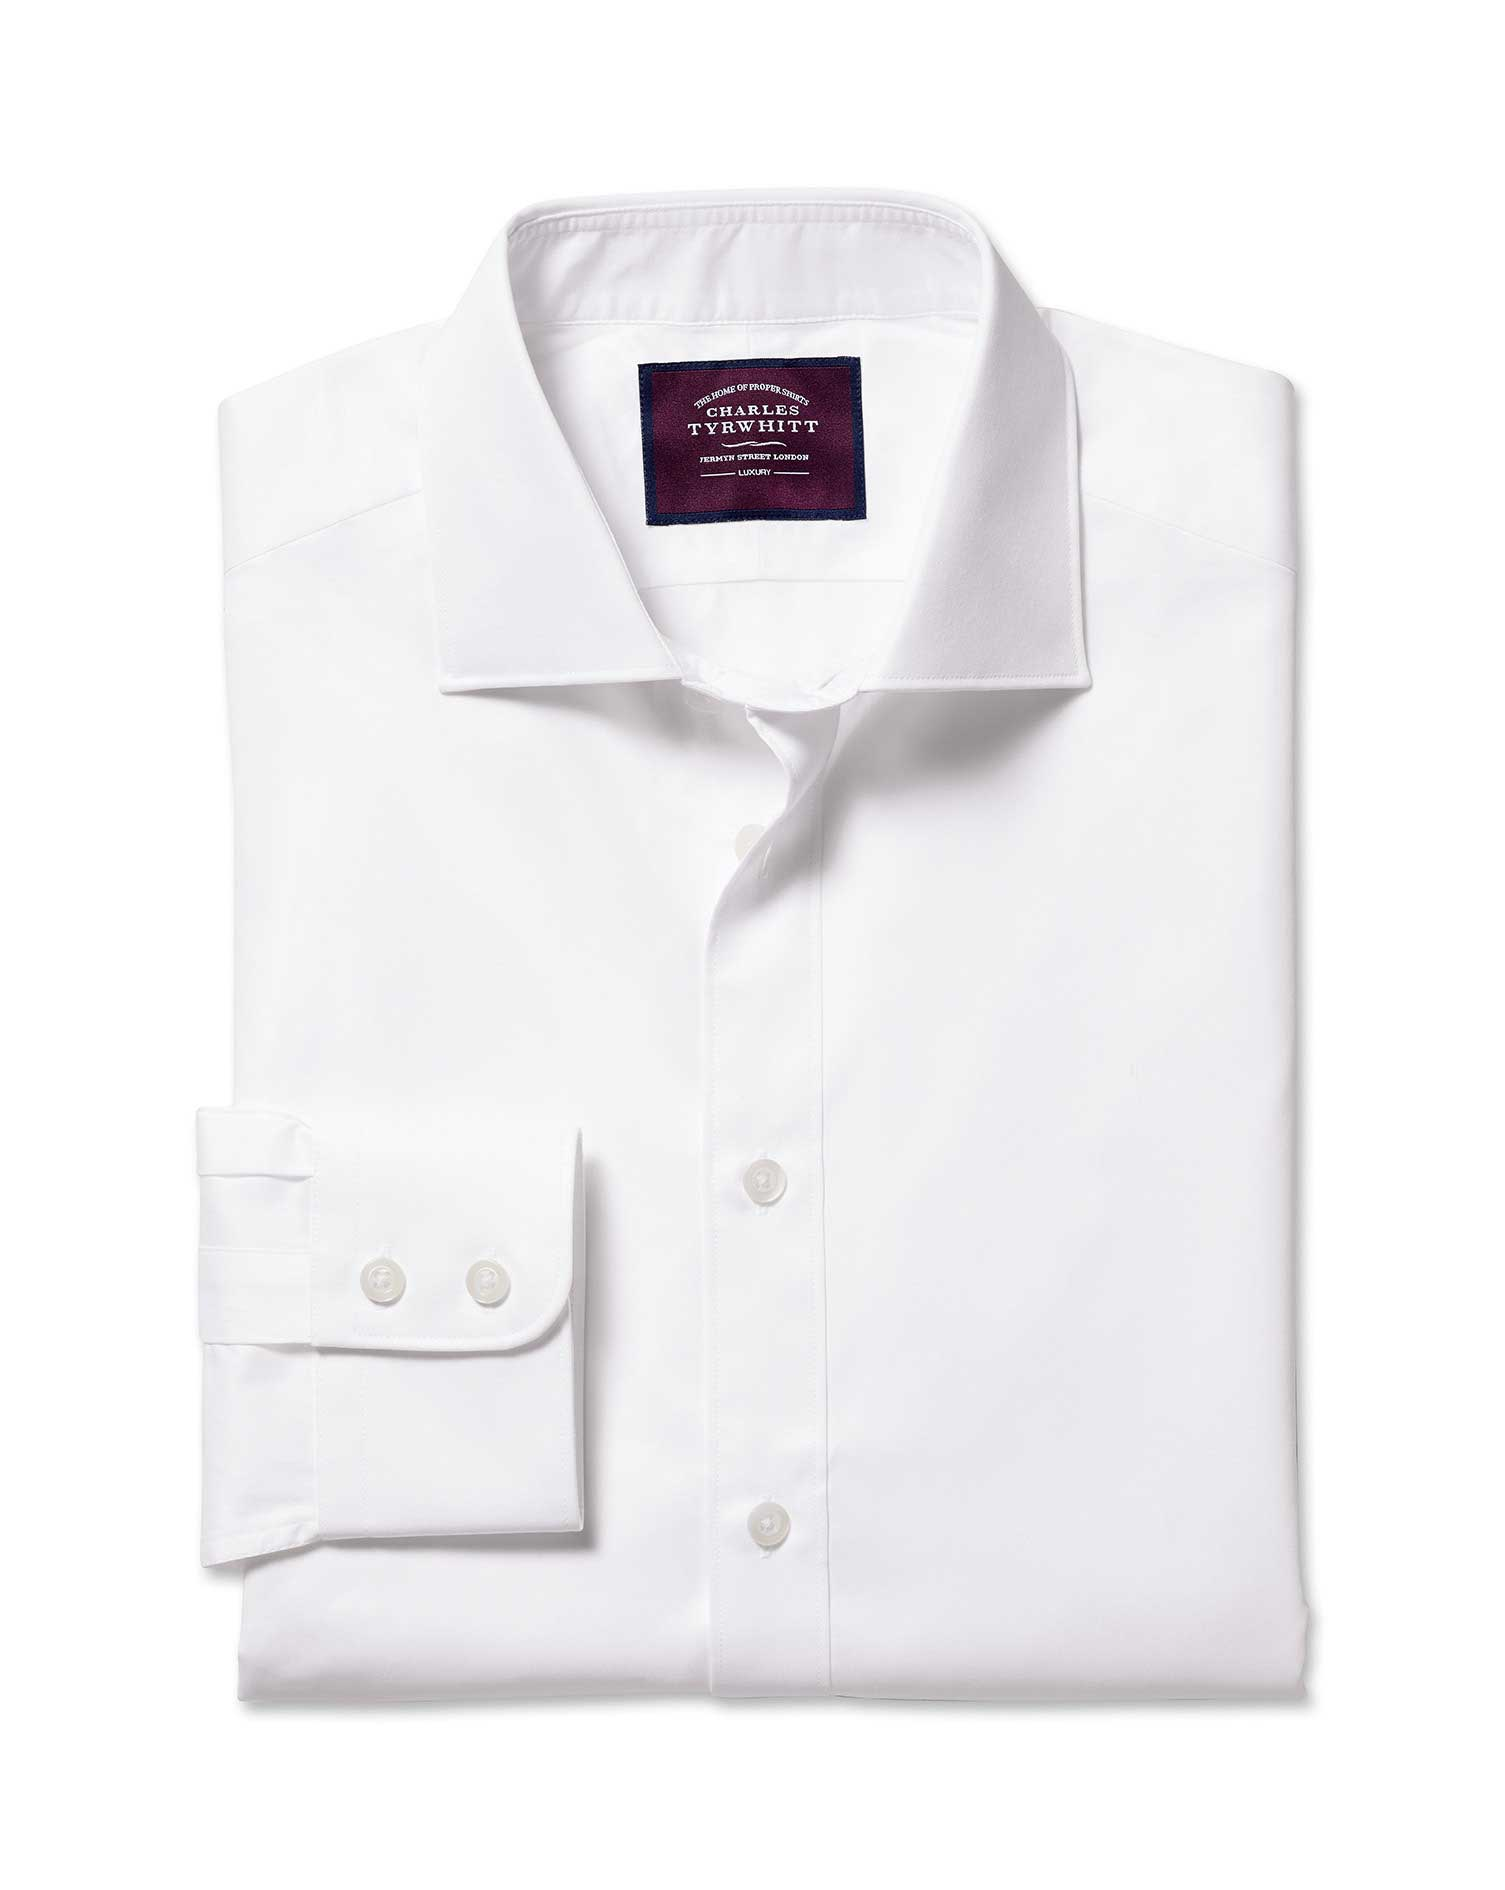 Classic Fit White Luxury Twill Egyptian Cotton Formal Shirt Double Cuff Size 17.5/34 by Charles Tyrw